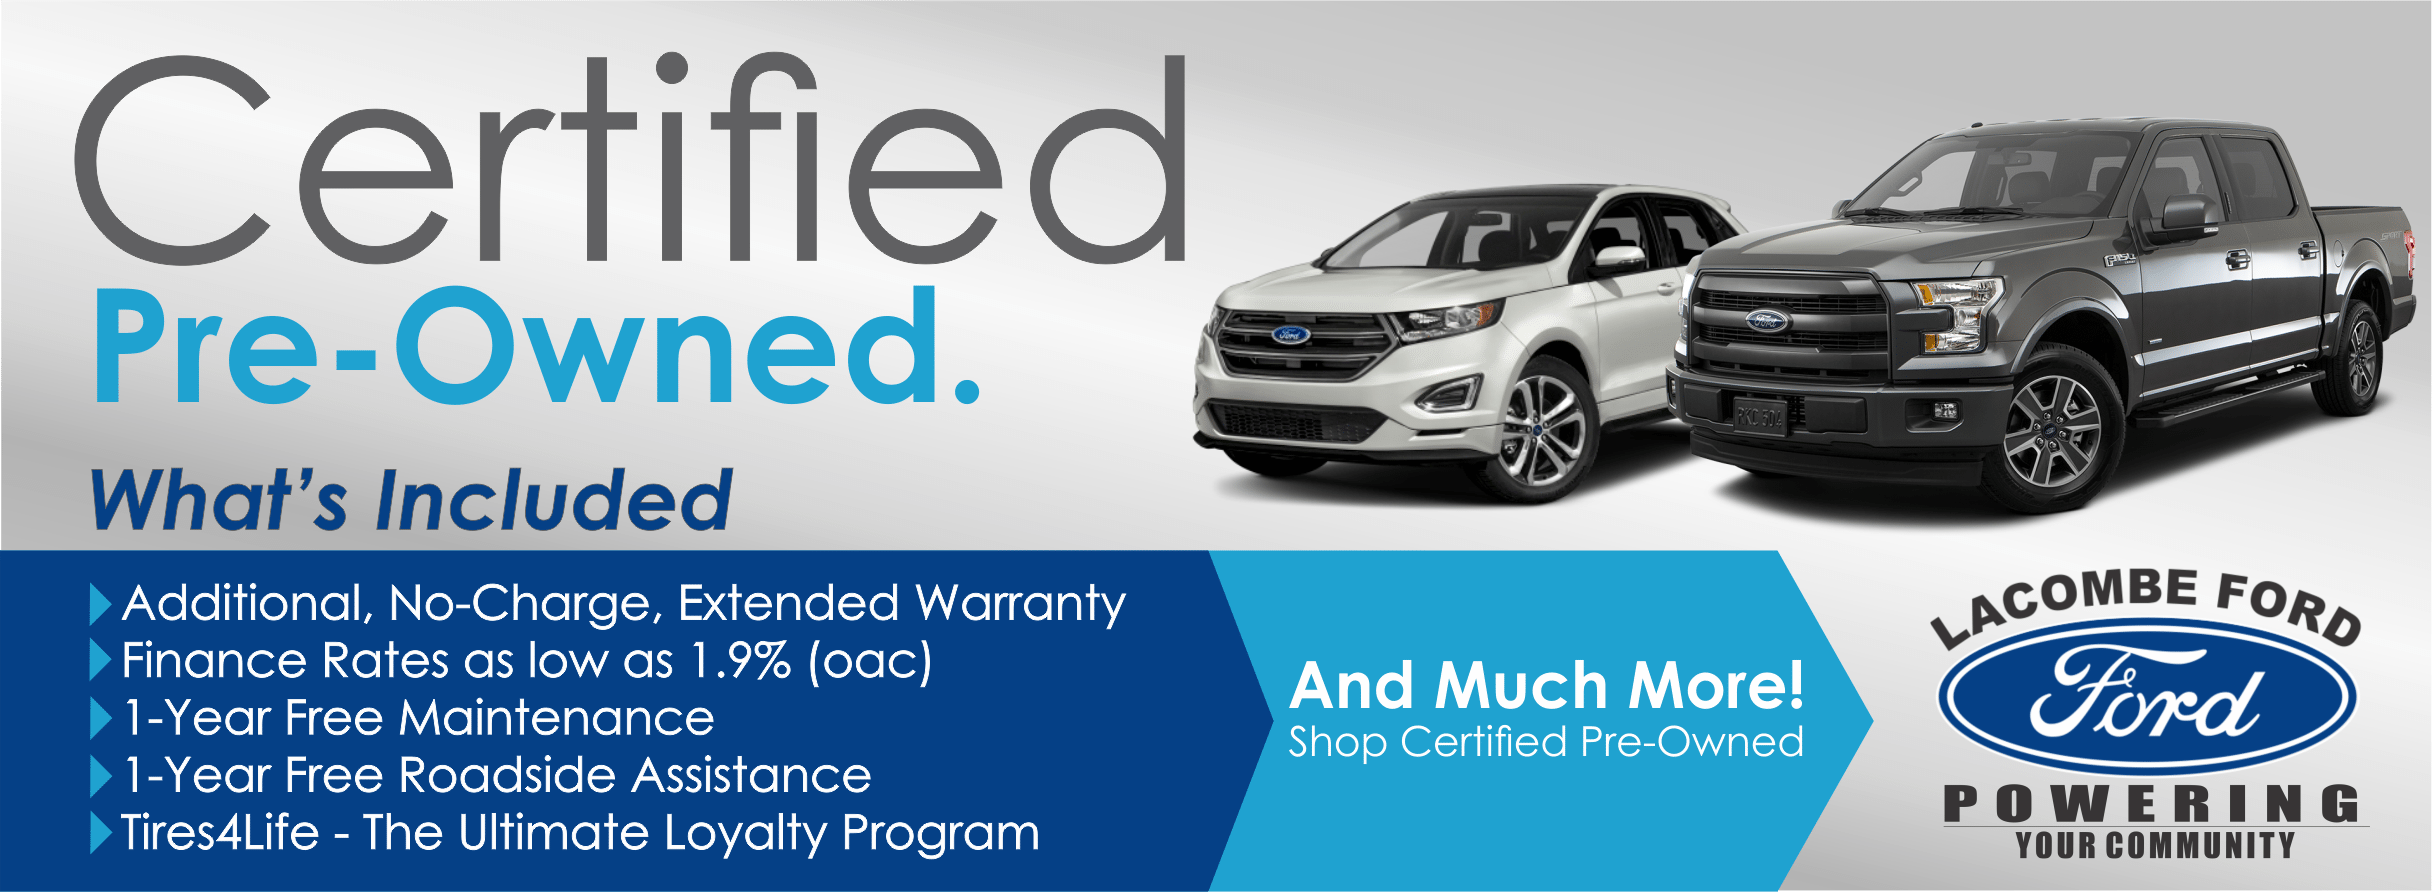 Ford certified preowned used vehicles for sale in lacombe alberta